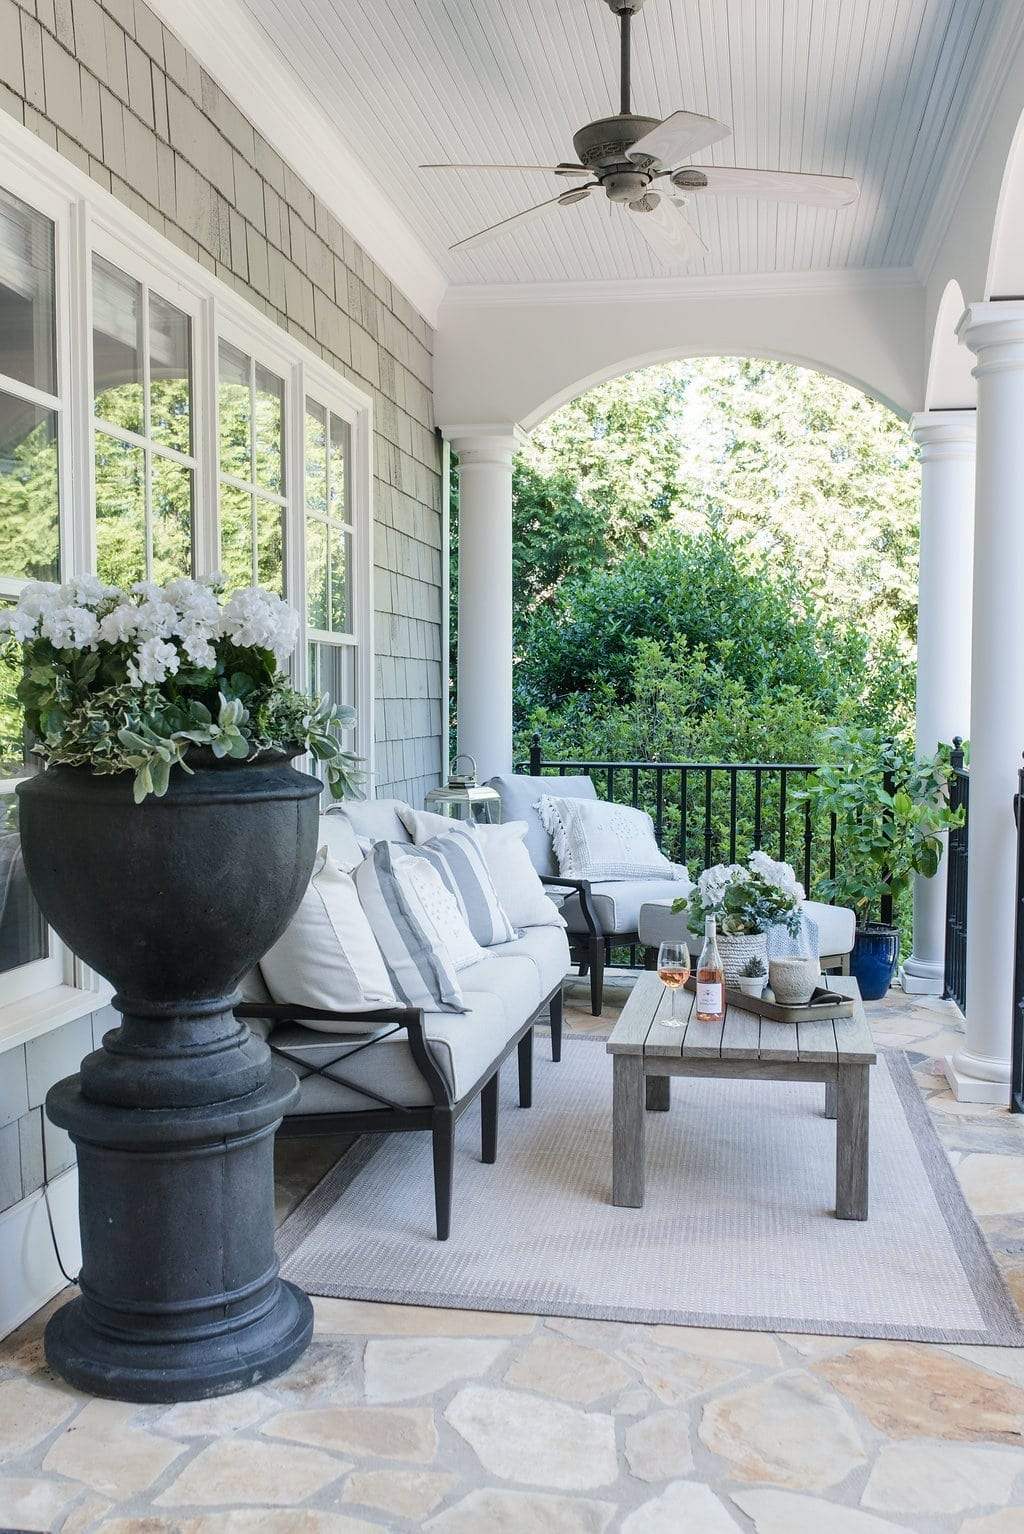 Woodard patio furniture. Decorating outside. How to clean outdoor cushions.